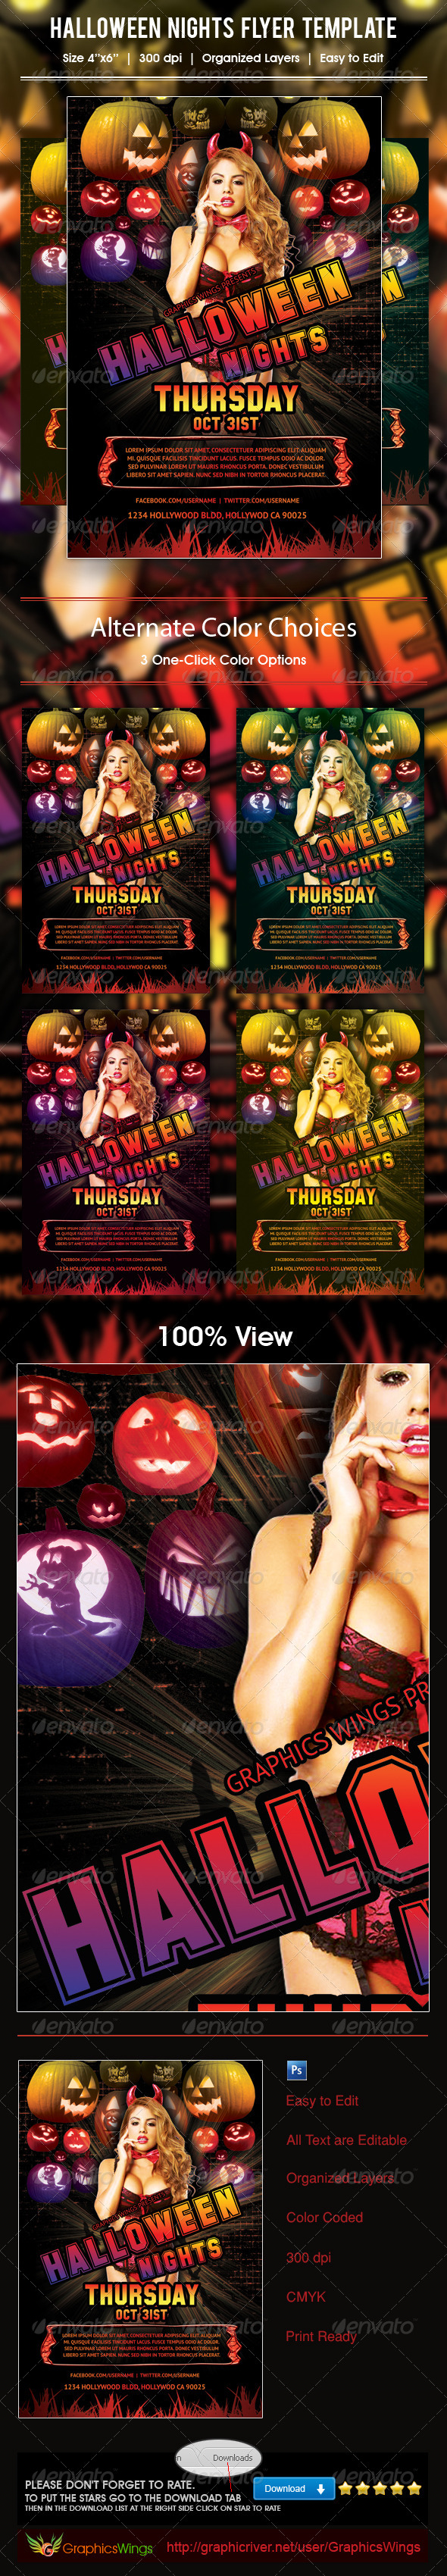 Halloween Nights Flyer Template - Events Flyers